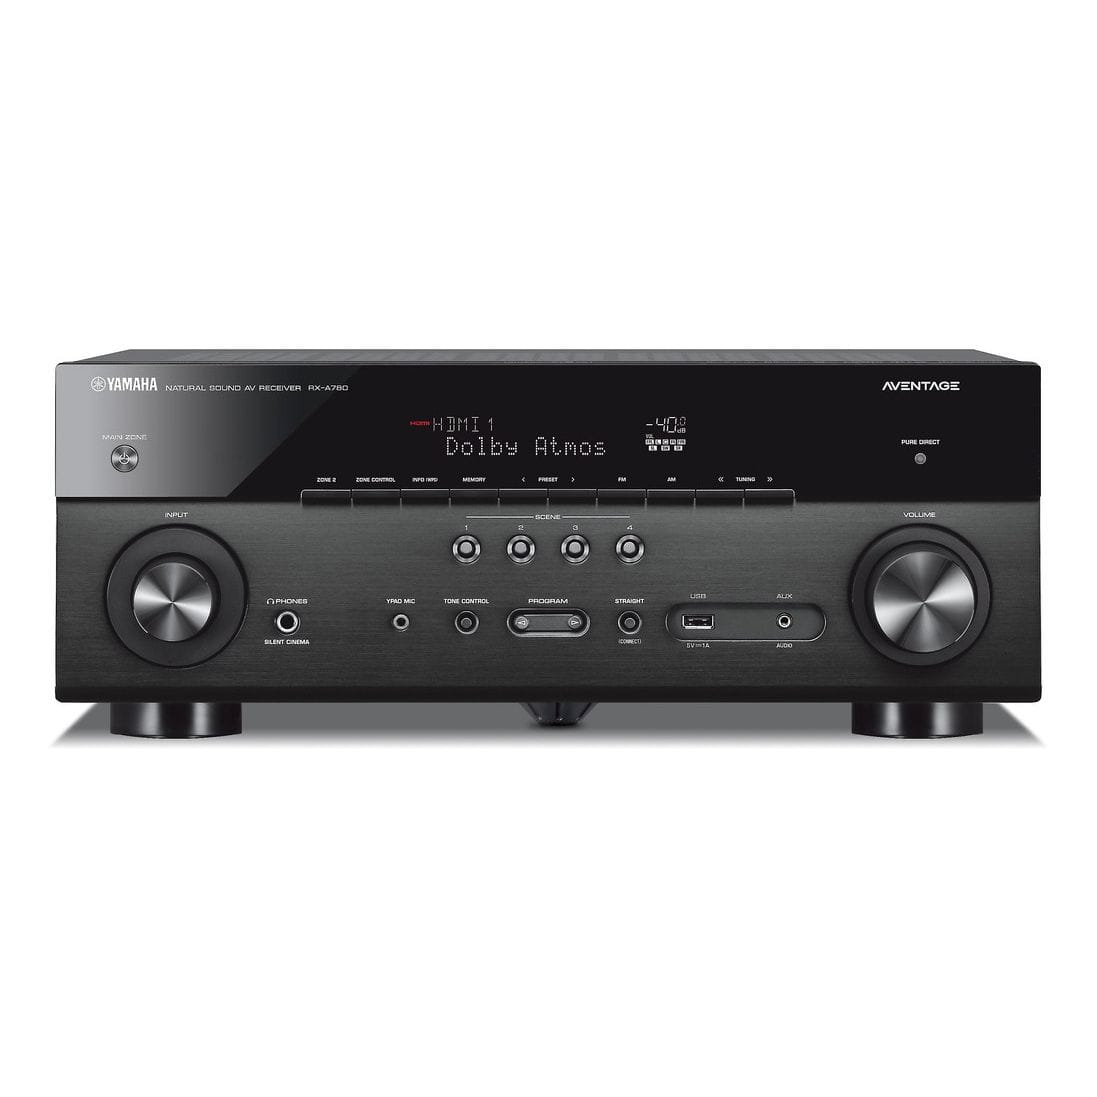 Yamaha AVENTAGE RX-A780 7.2 Channel AV Receiver